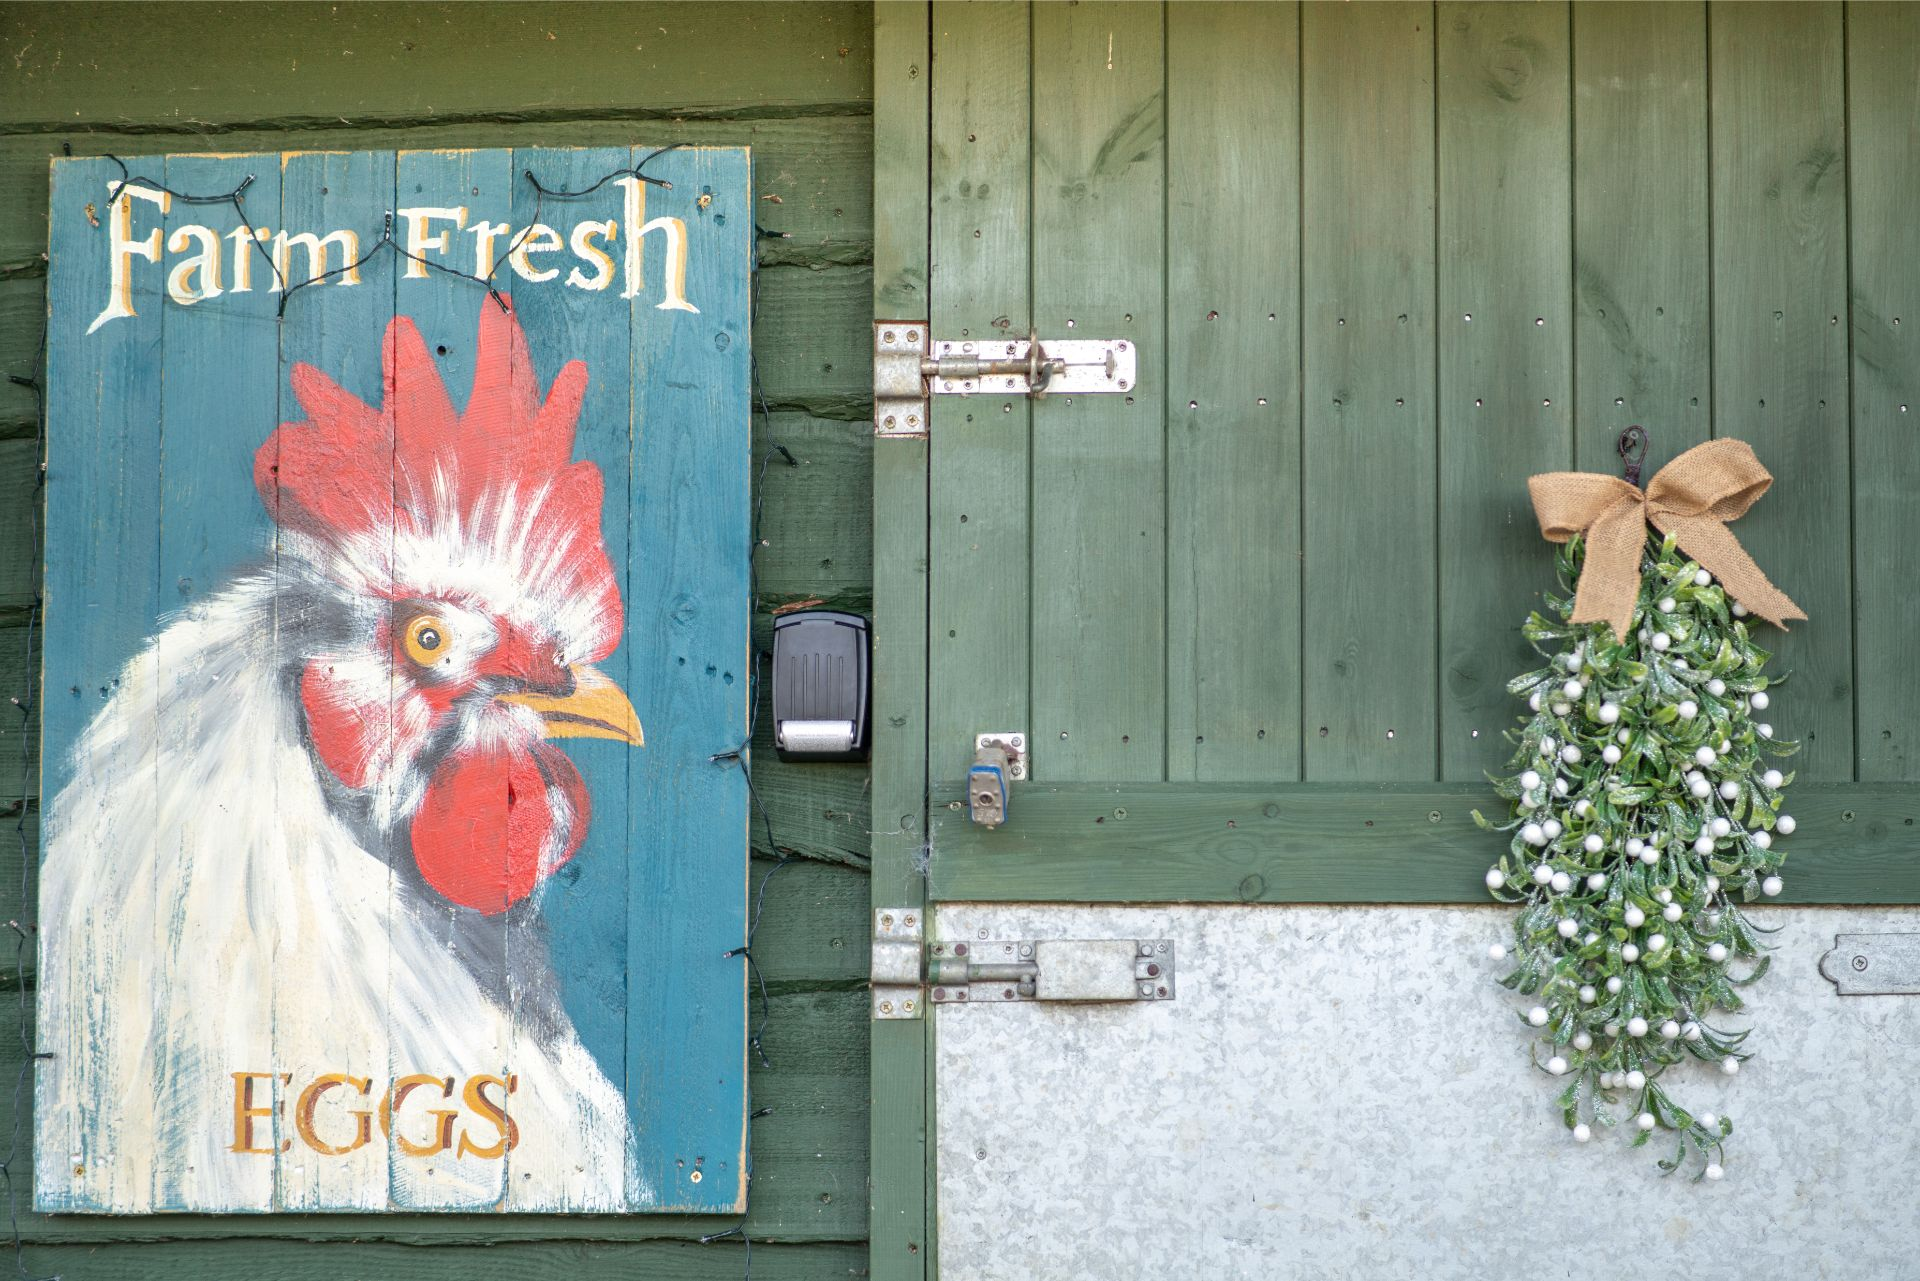 a-vintage-farm-fresh-eggs-hen-print-against-a-stable-door-in-a-farm-at-christmas